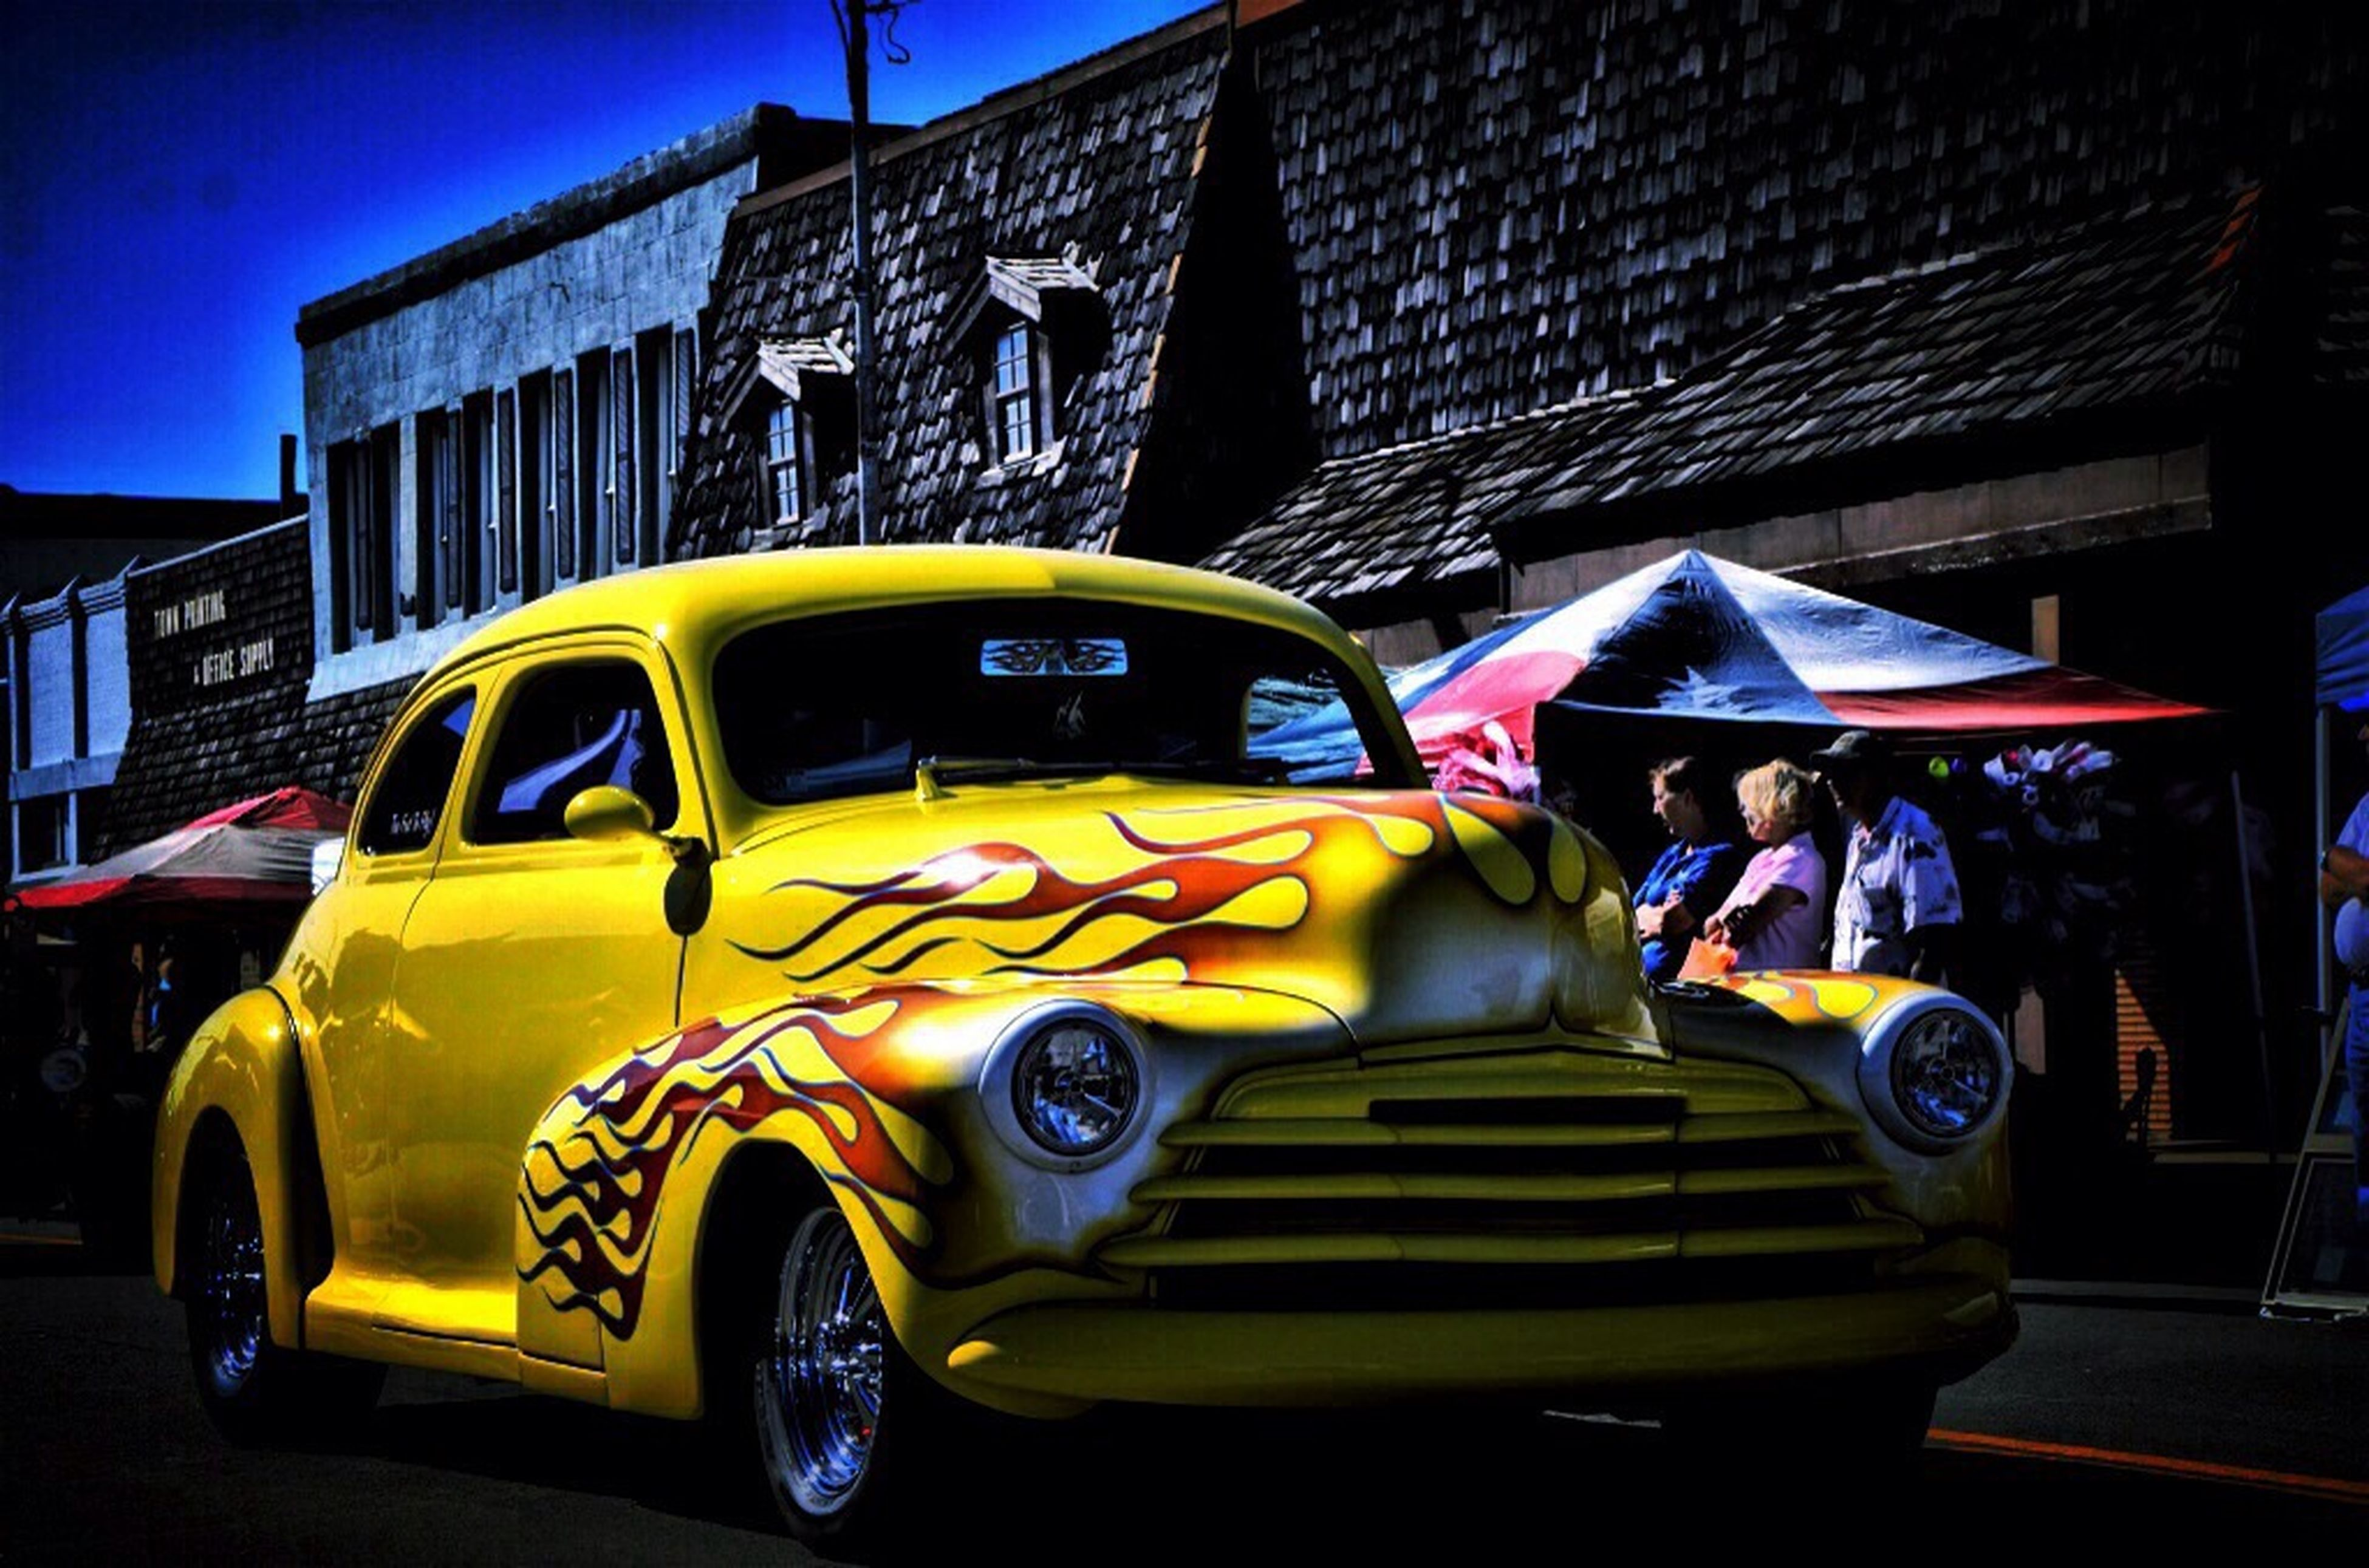 land vehicle, car, transportation, mode of transport, street, building exterior, graffiti, yellow, built structure, architecture, text, multi colored, city, stationary, western script, outdoors, road, day, blue, no people